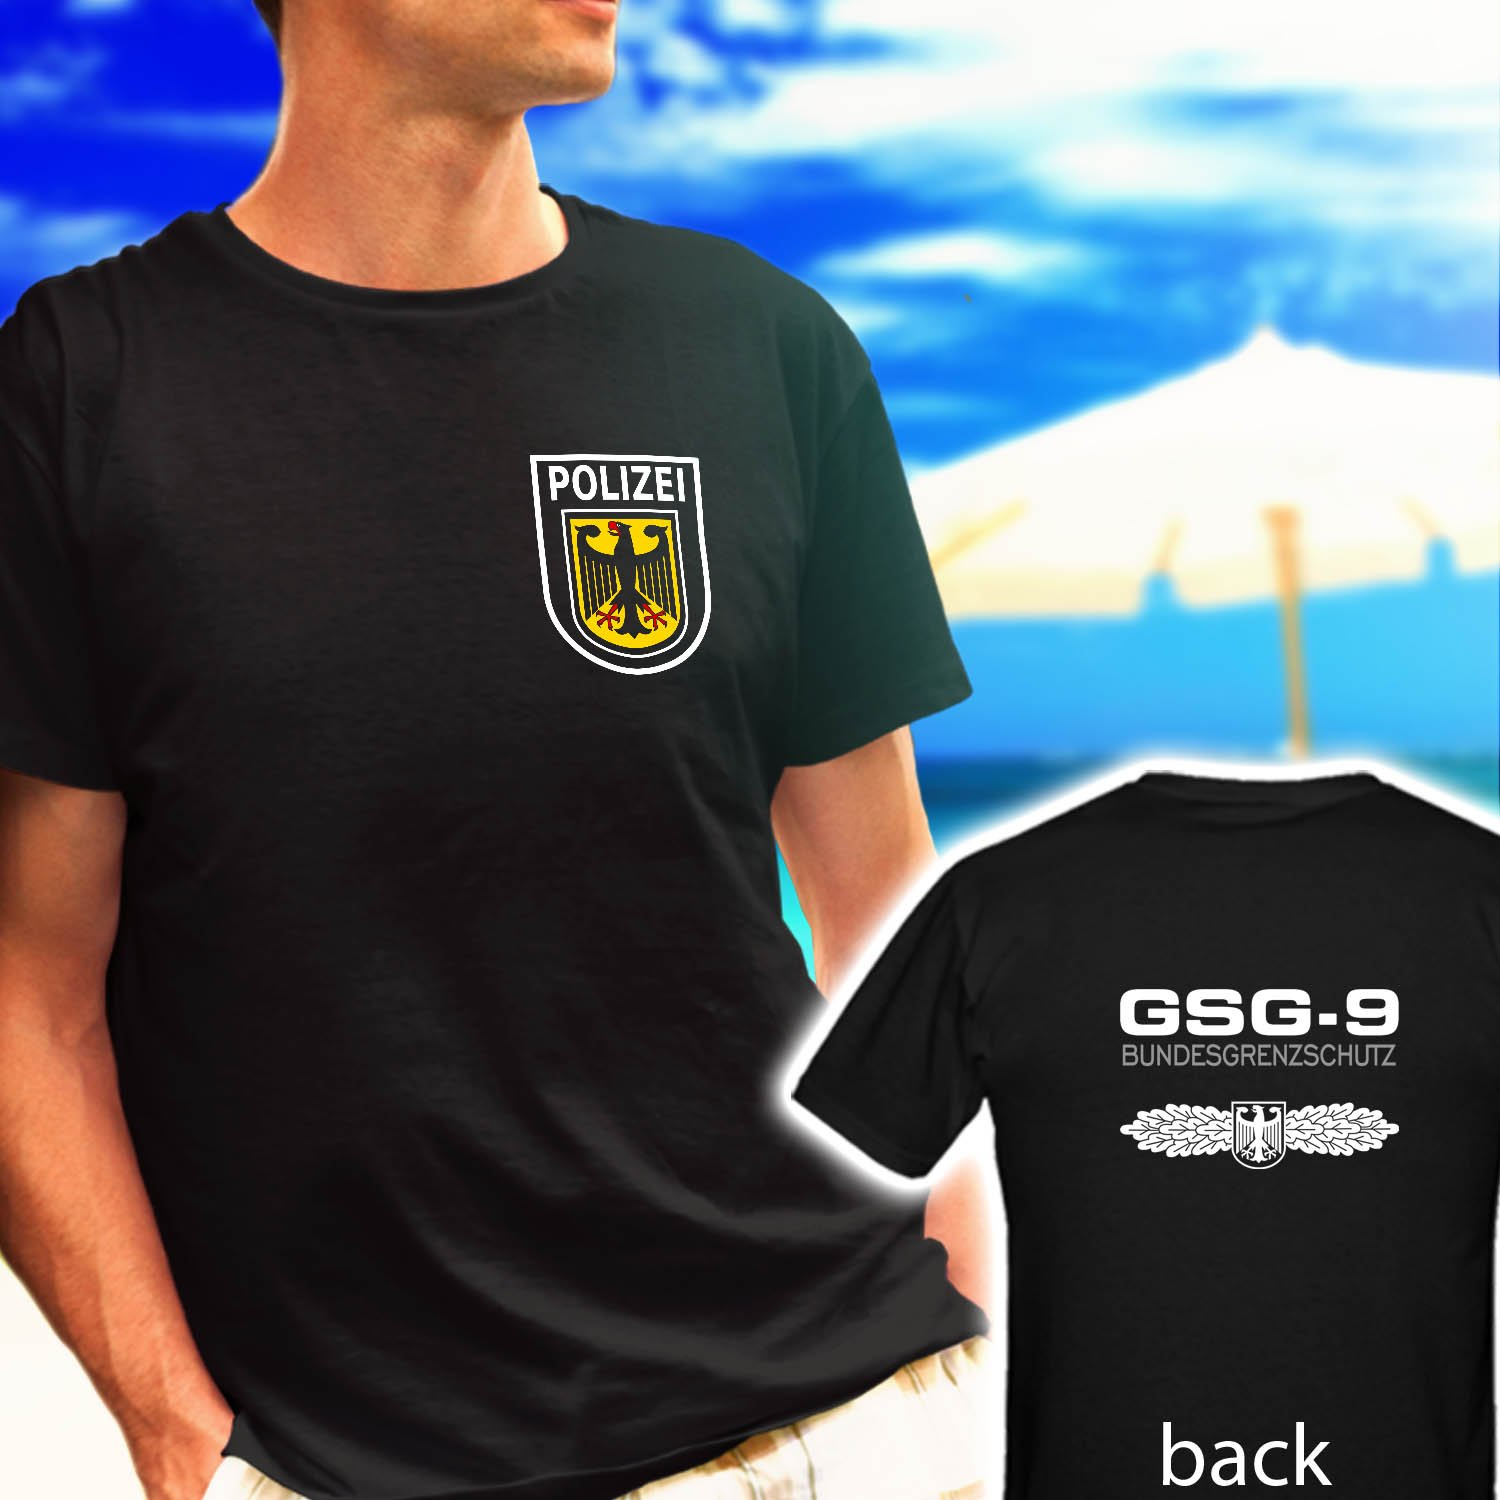 GSG 9 Germany swat Counter Terrorism Special Operations black t-shirt tshirt shirts tee SIZE 2XL